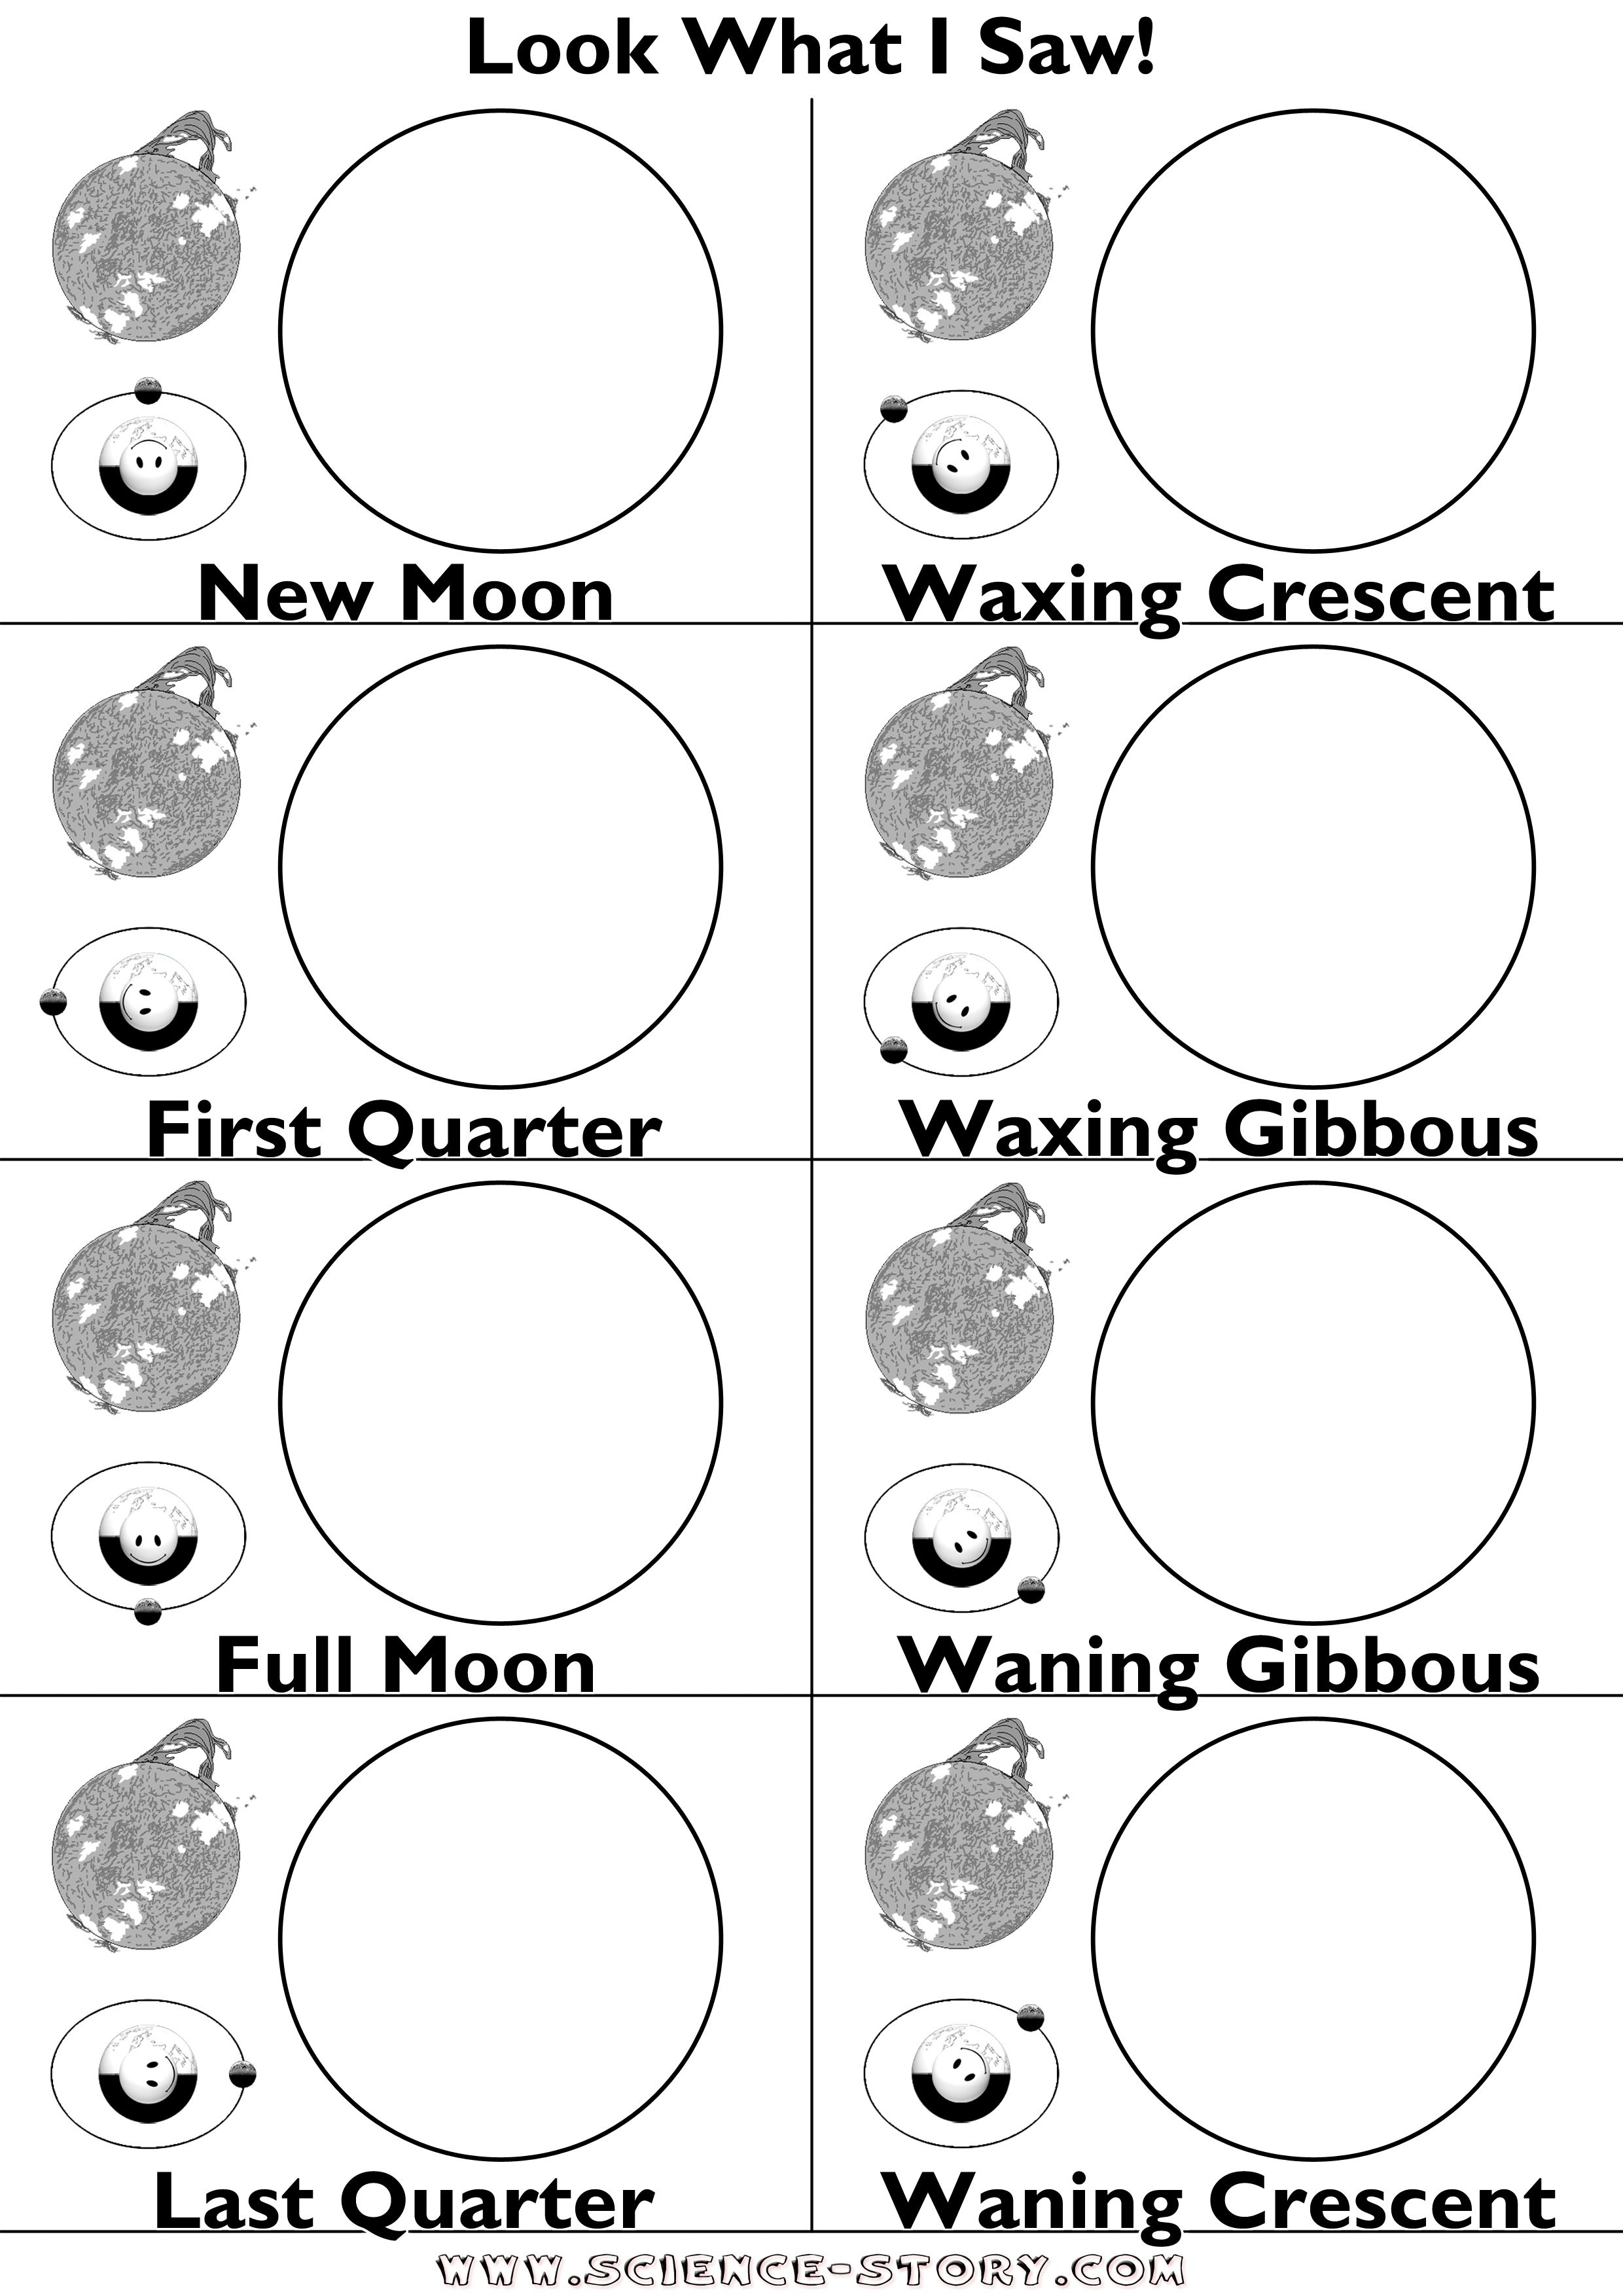 Moon Phases Worksheet - Google Search | Science Moon | Moon Phases | Phases Of The Moon Printable Worksheets